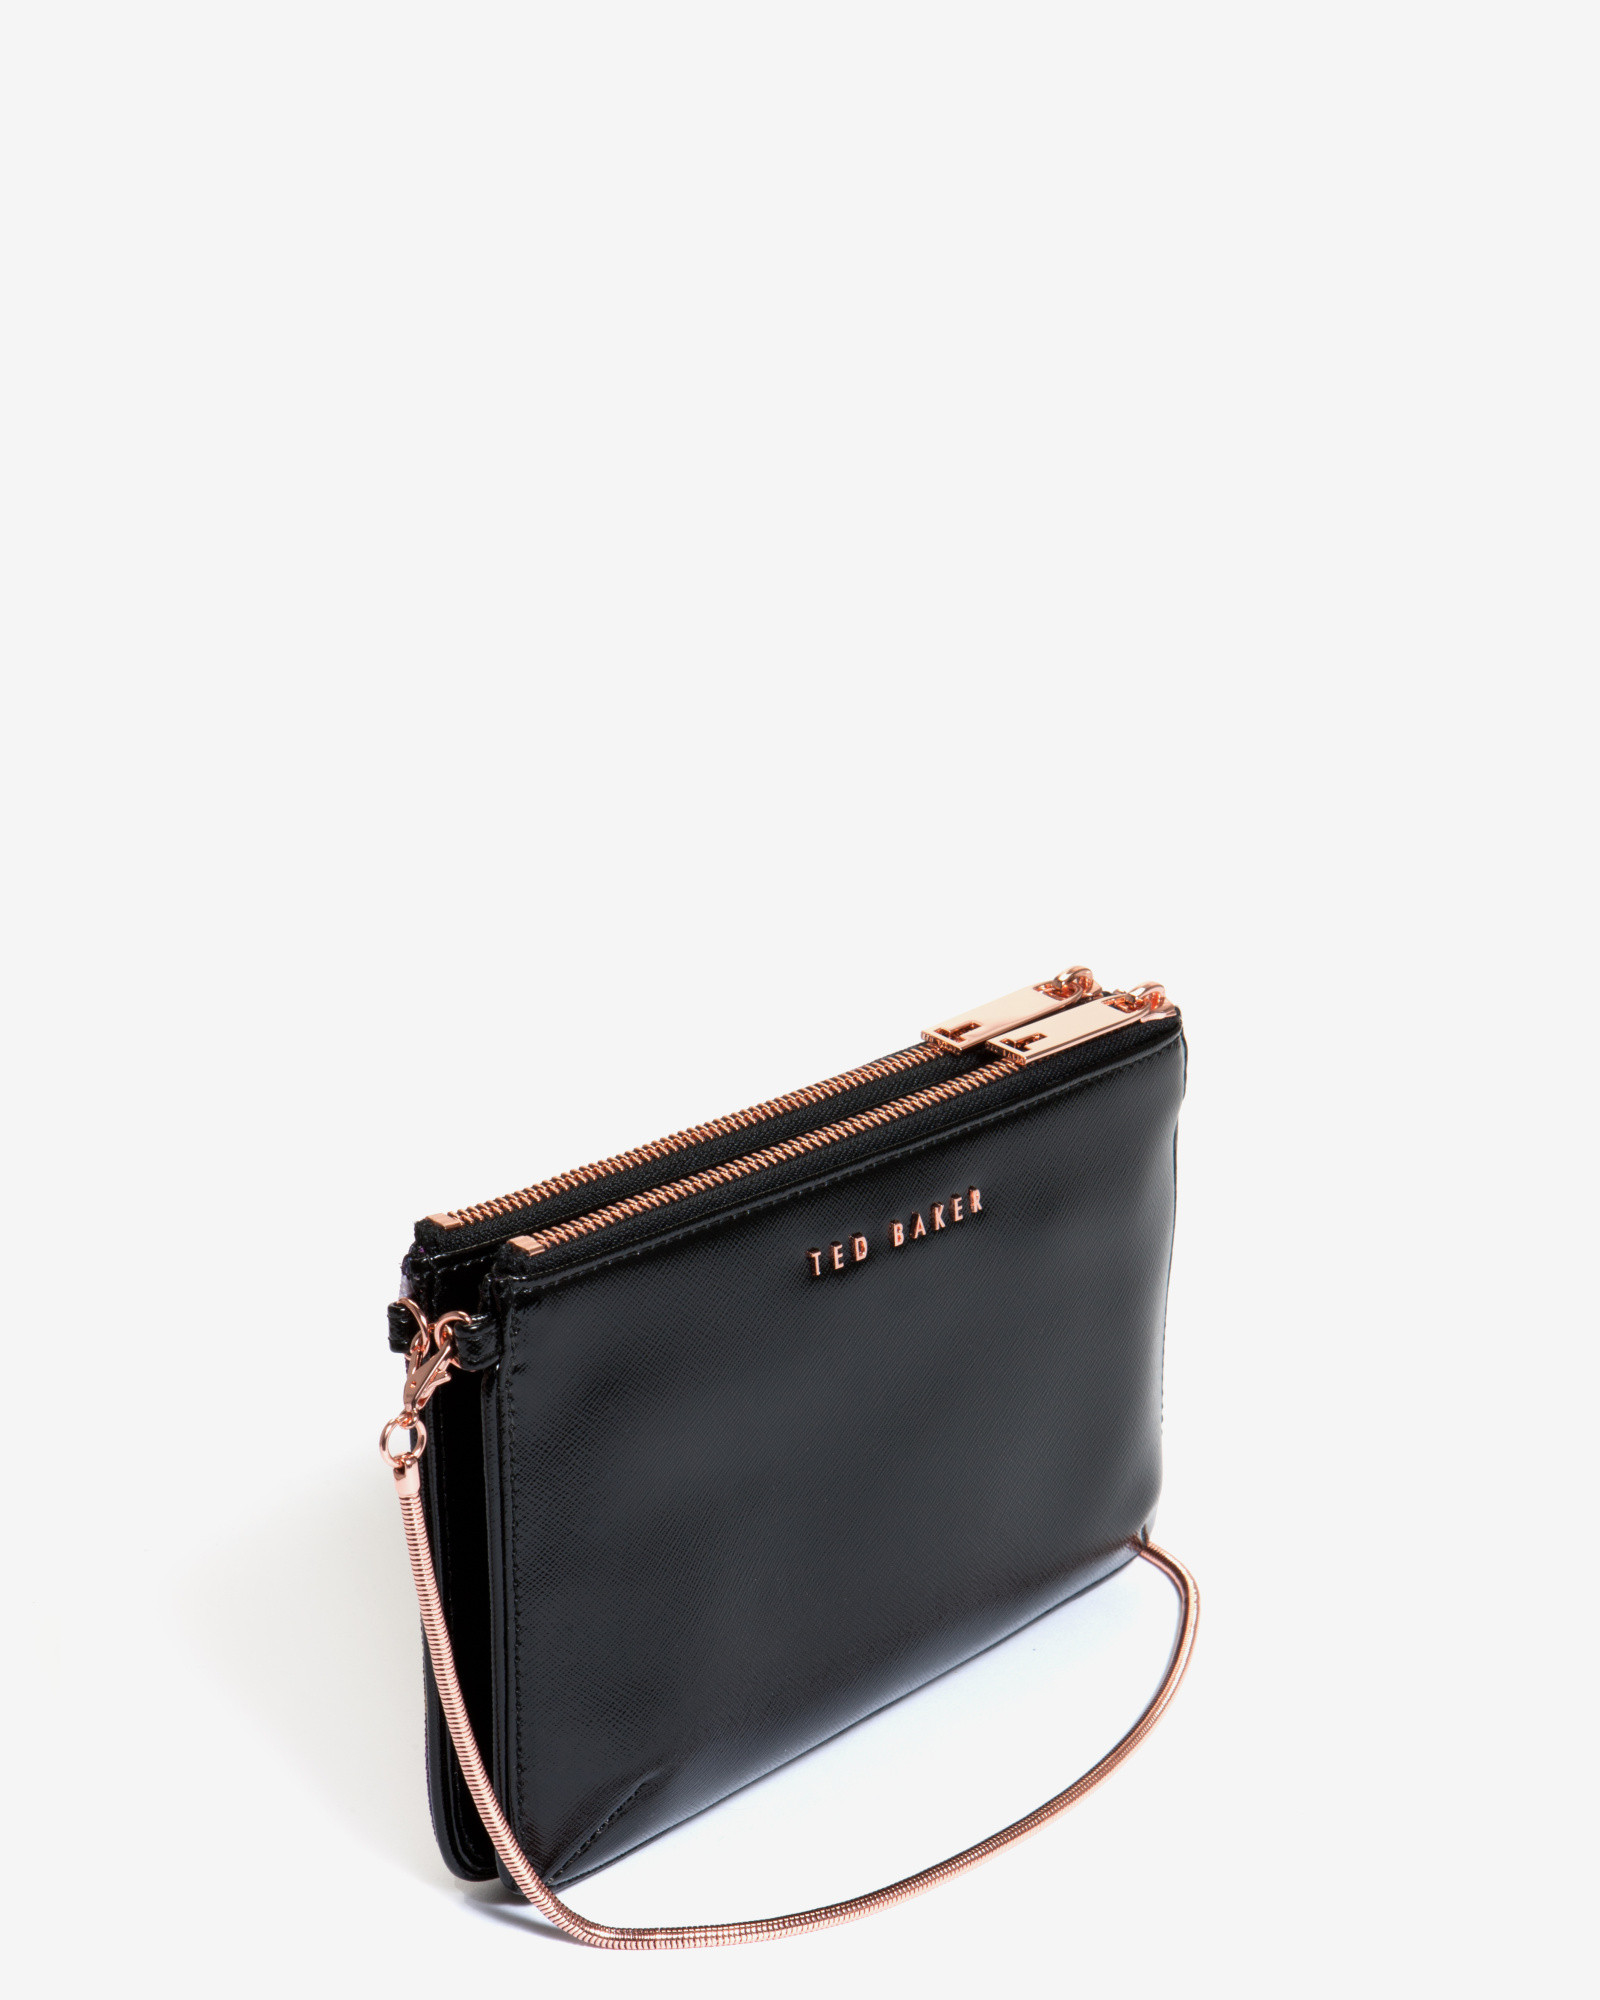 2fb2d56b87d Ted Baker Shadow Floral Canvas Clutch Bag in Black - Lyst